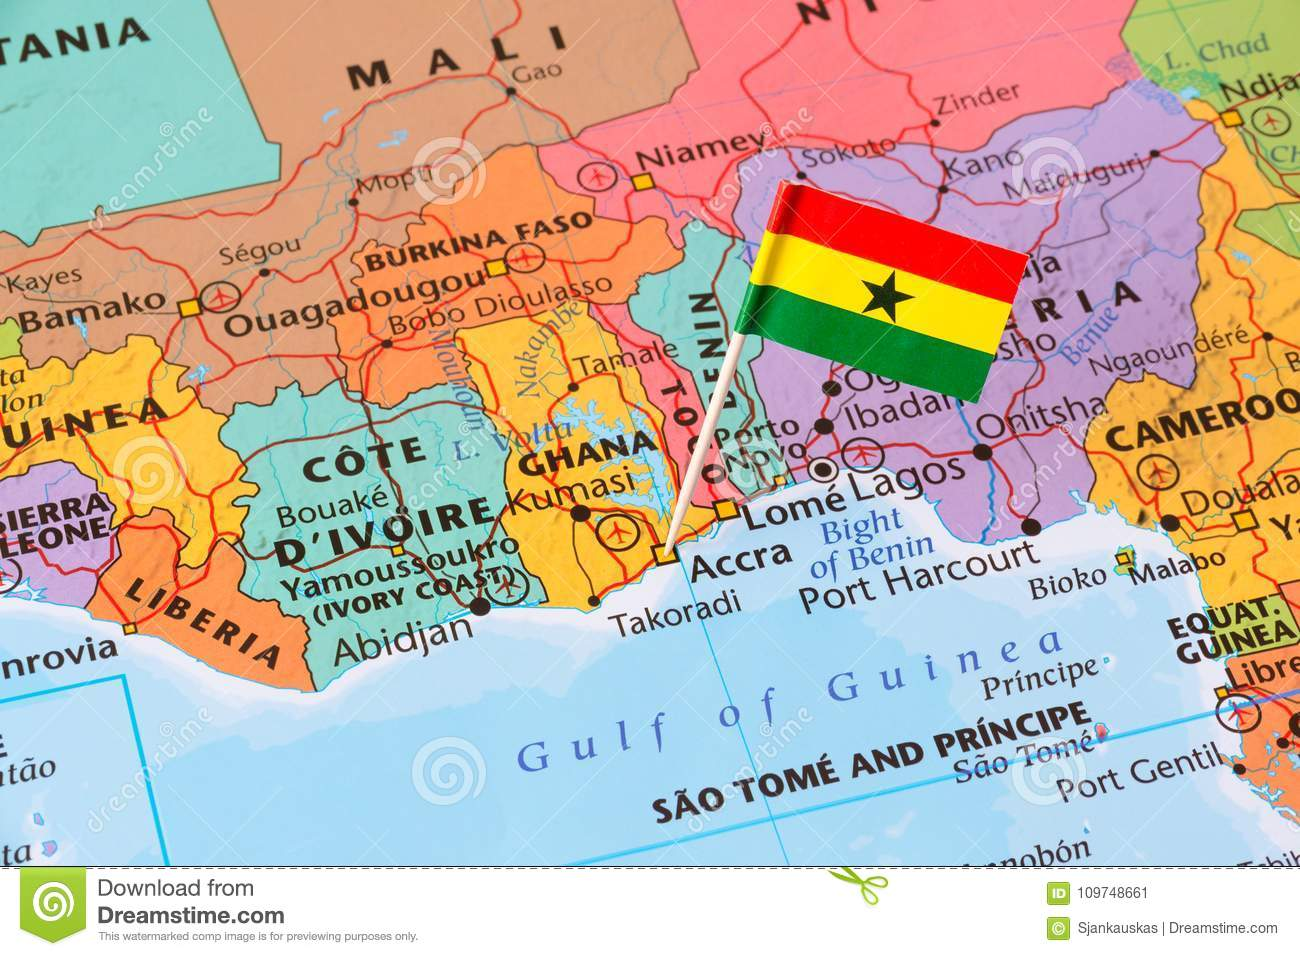 Ghana Map And A Flag Pin Stock Image Image Of Explore 109748661